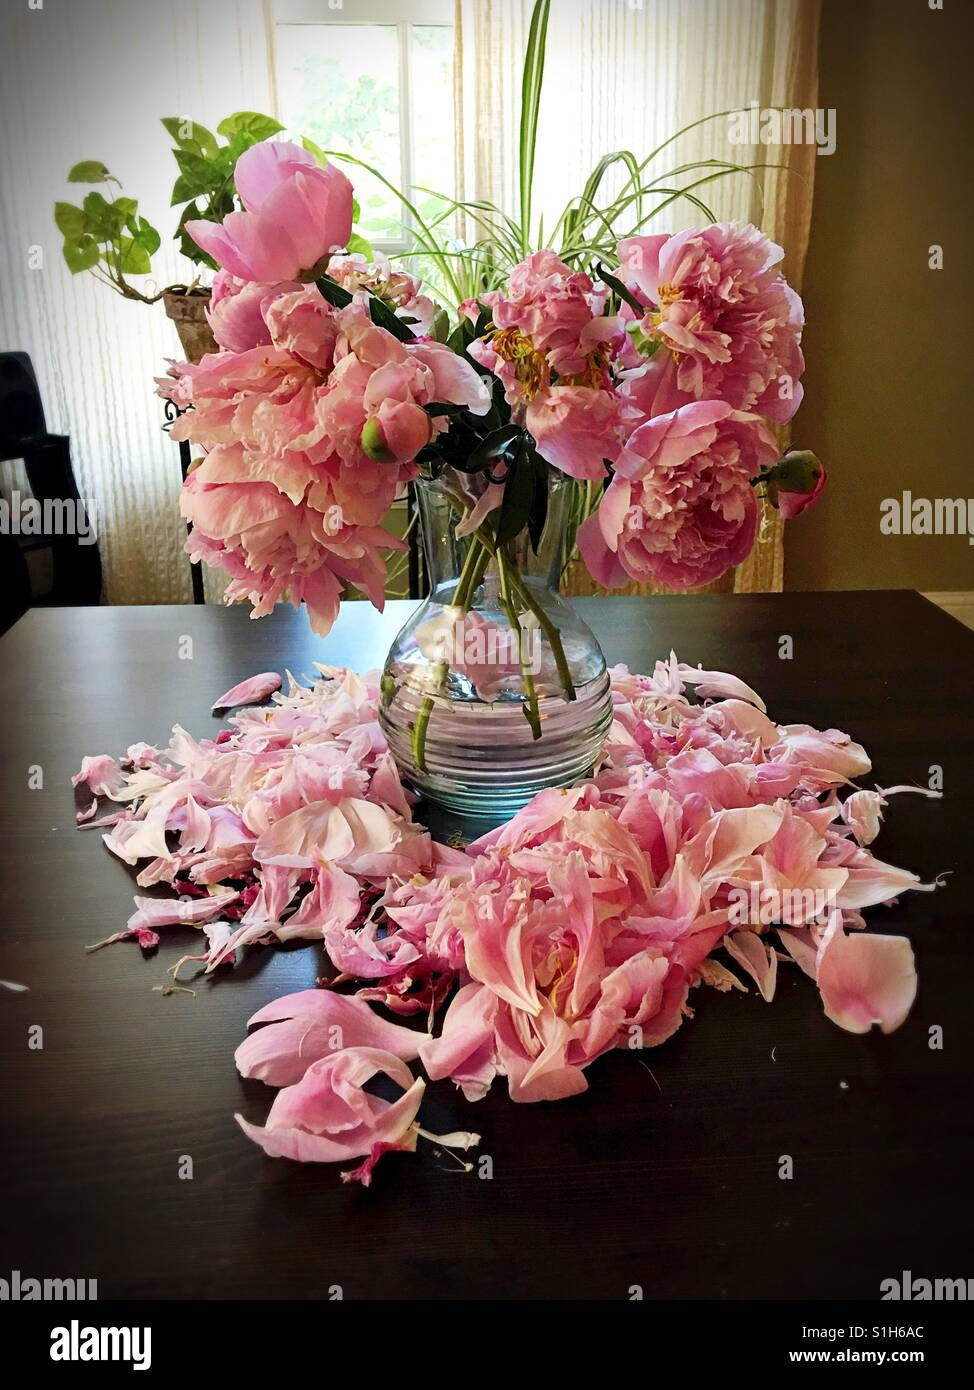 Flowers Dying Stock Photos & Flowers Dying Stock Images - Alamy